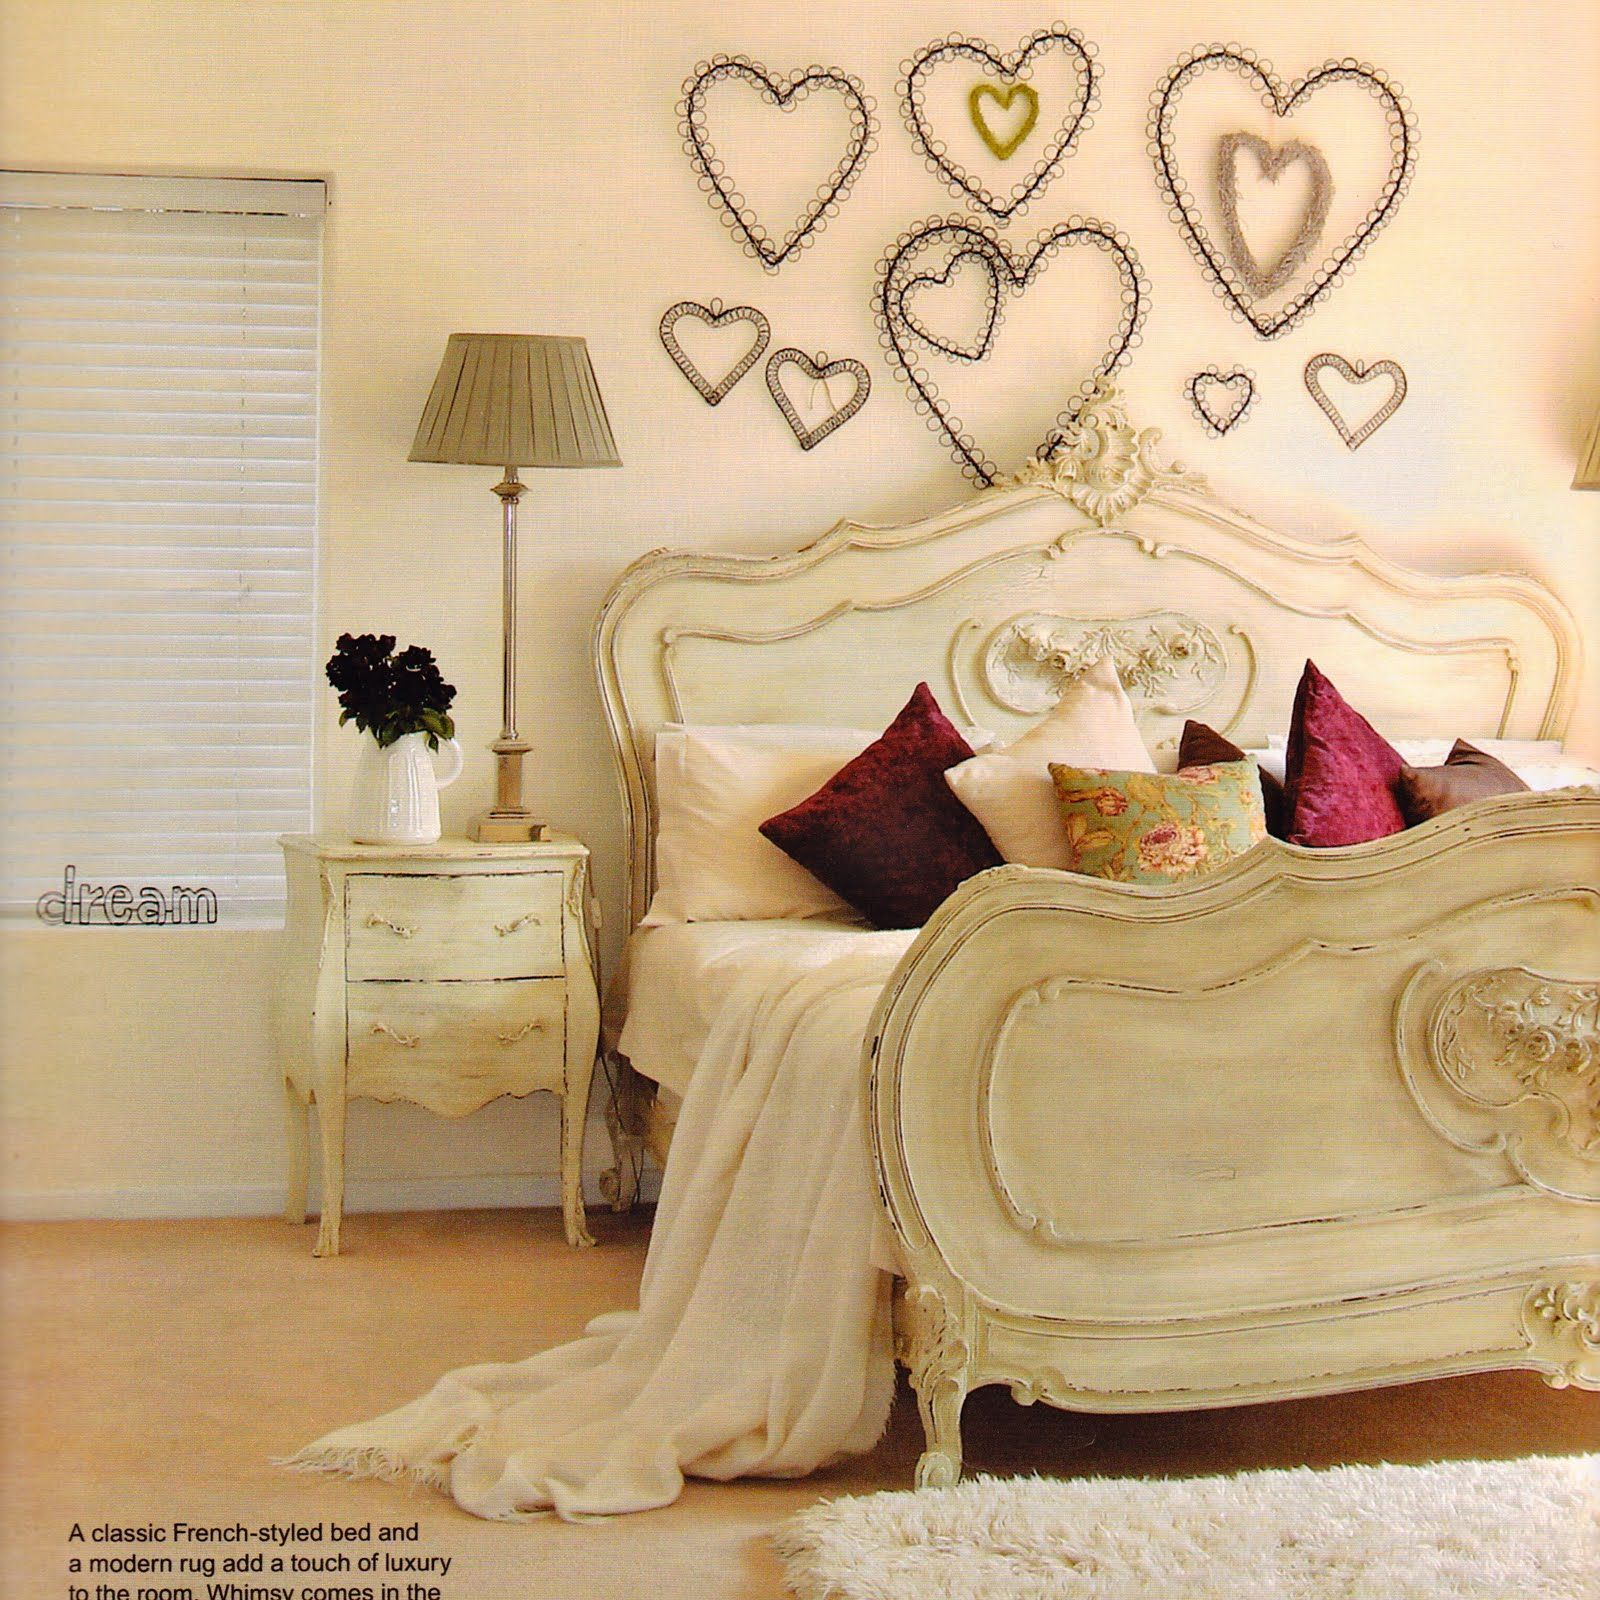 20 Romantic Bedroom Ideas | Bedrooms, House beautiful and House